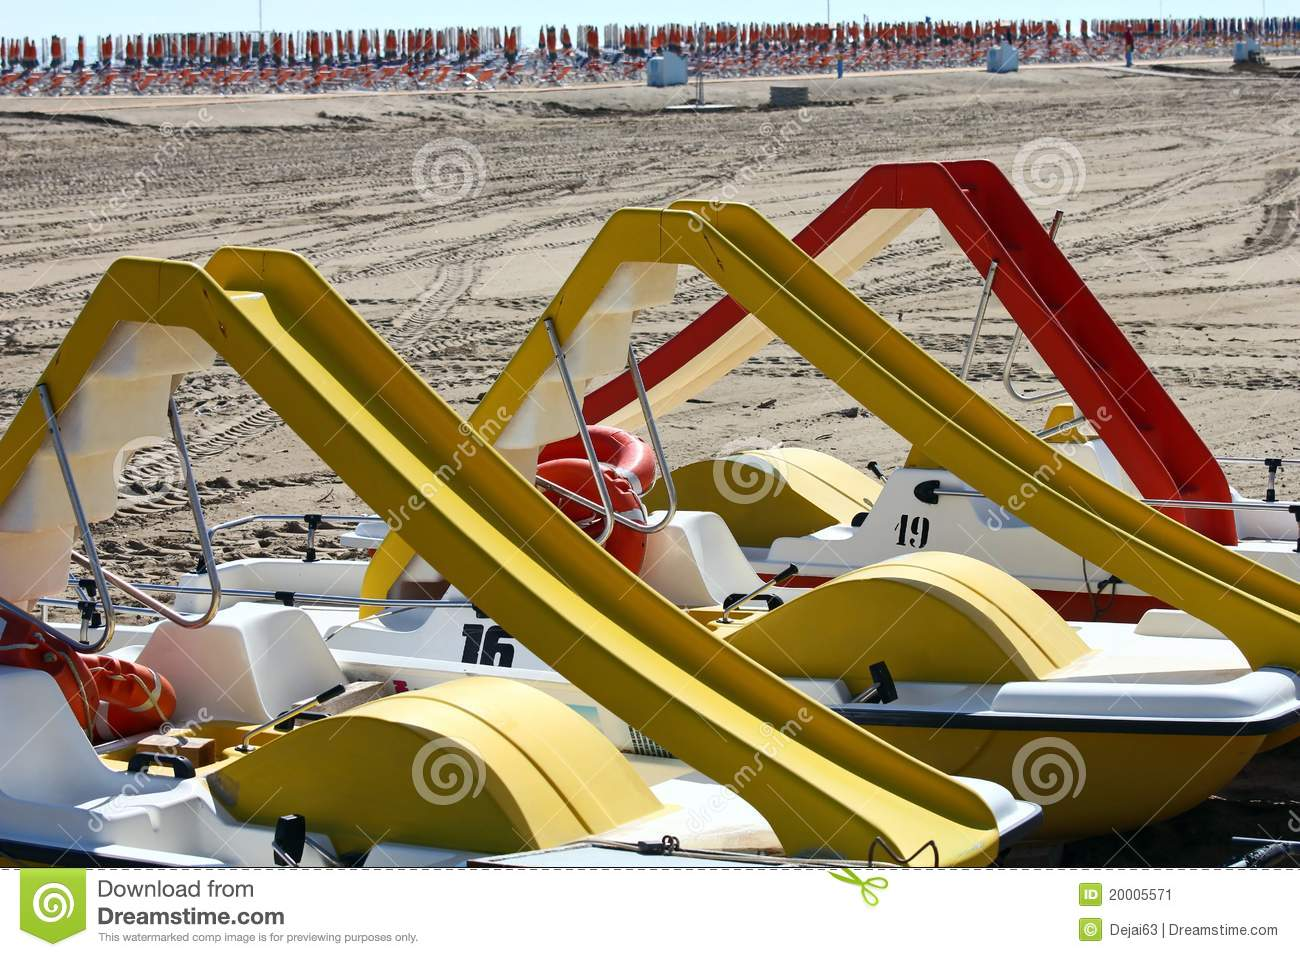 Paddle-boats with slides on it at the beach.